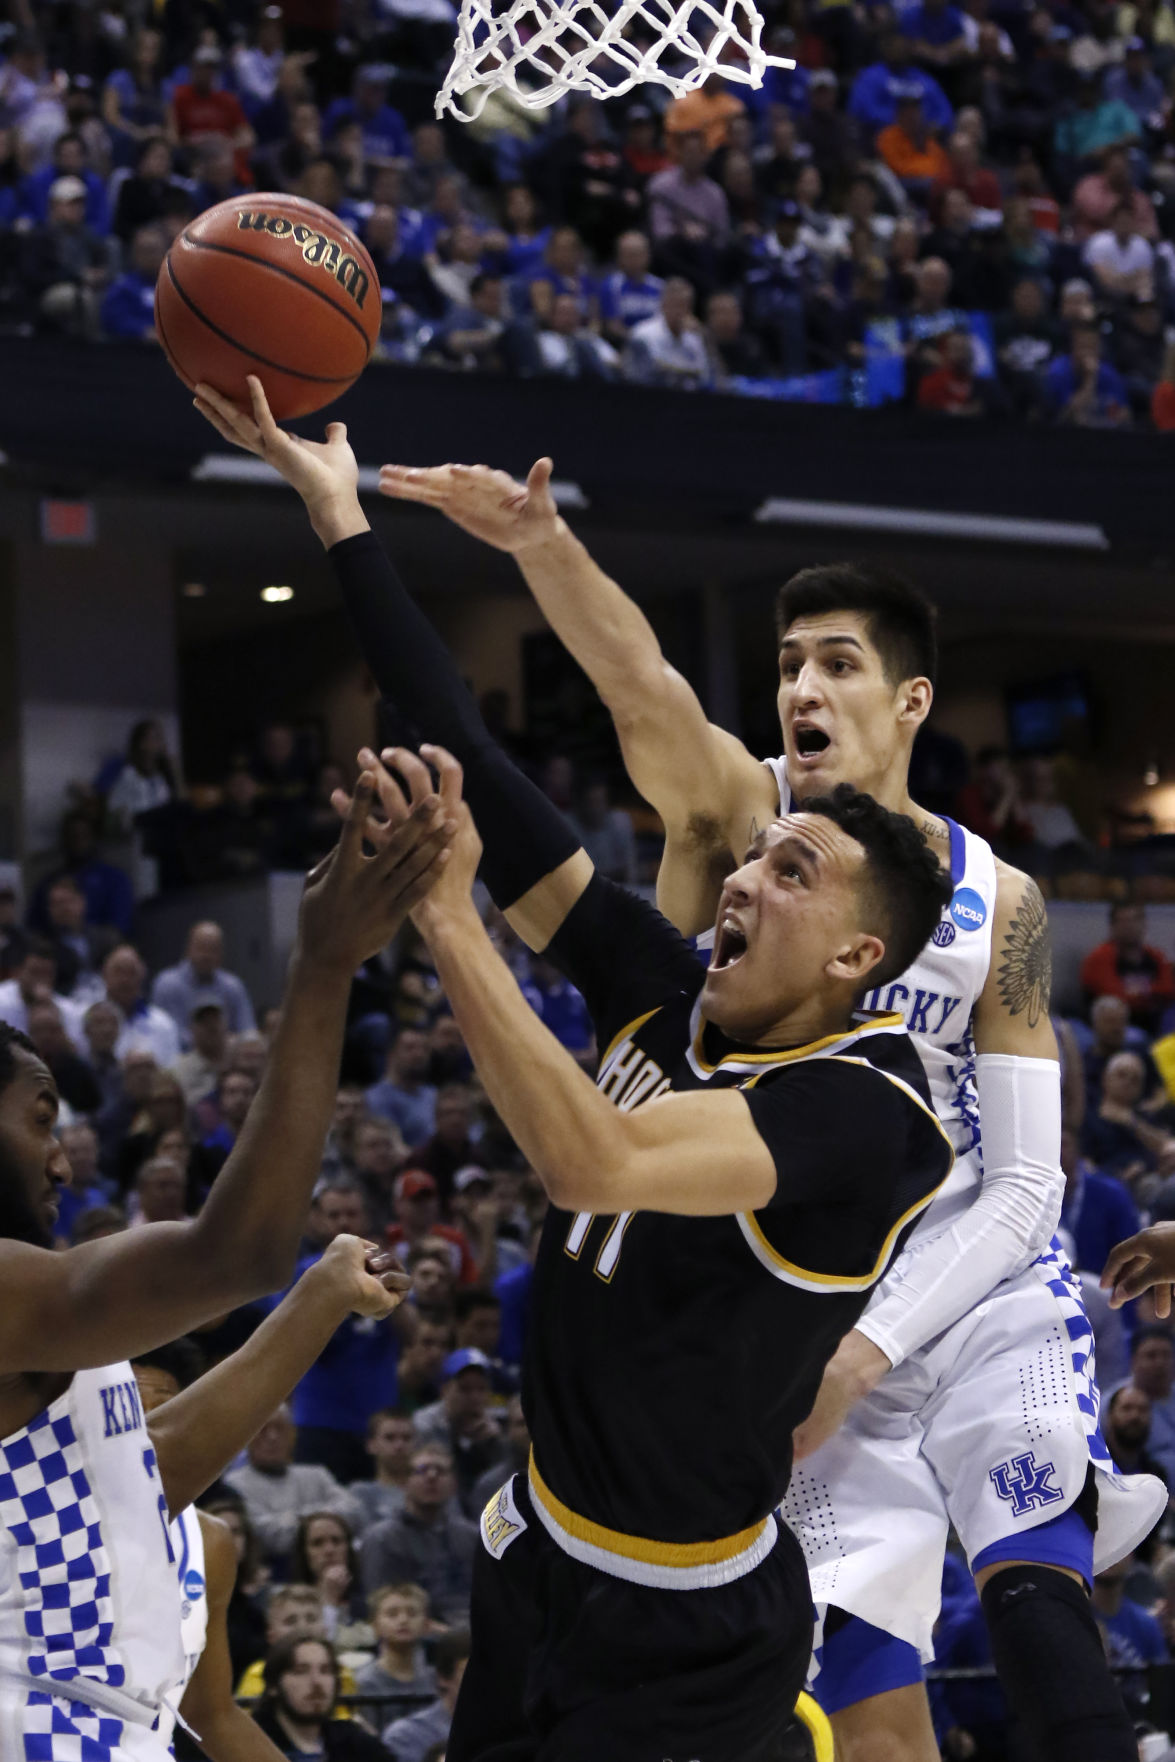 Kentucky vs. Wichita State